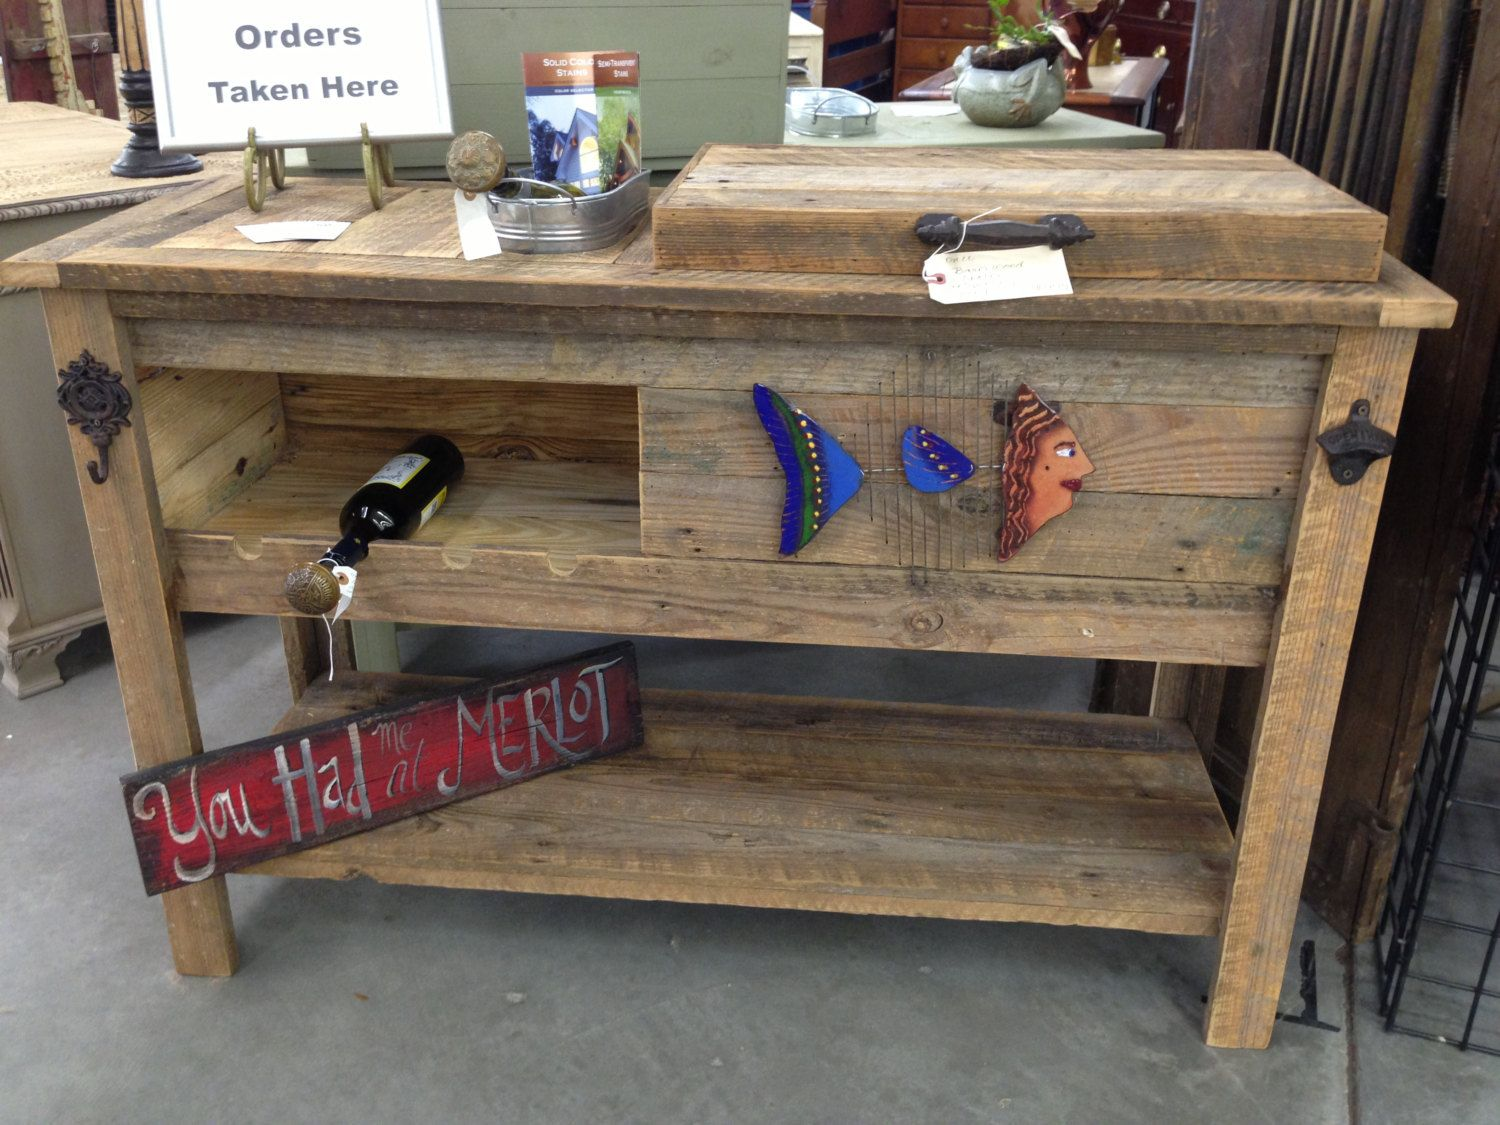 Rustic Cooler Table   Shipped Or Free Pick Up   Outdoor Bar / Man Cave /  Beverage Center / Ice Chest Cabinet / Deck, Patio, Cabin Furniture